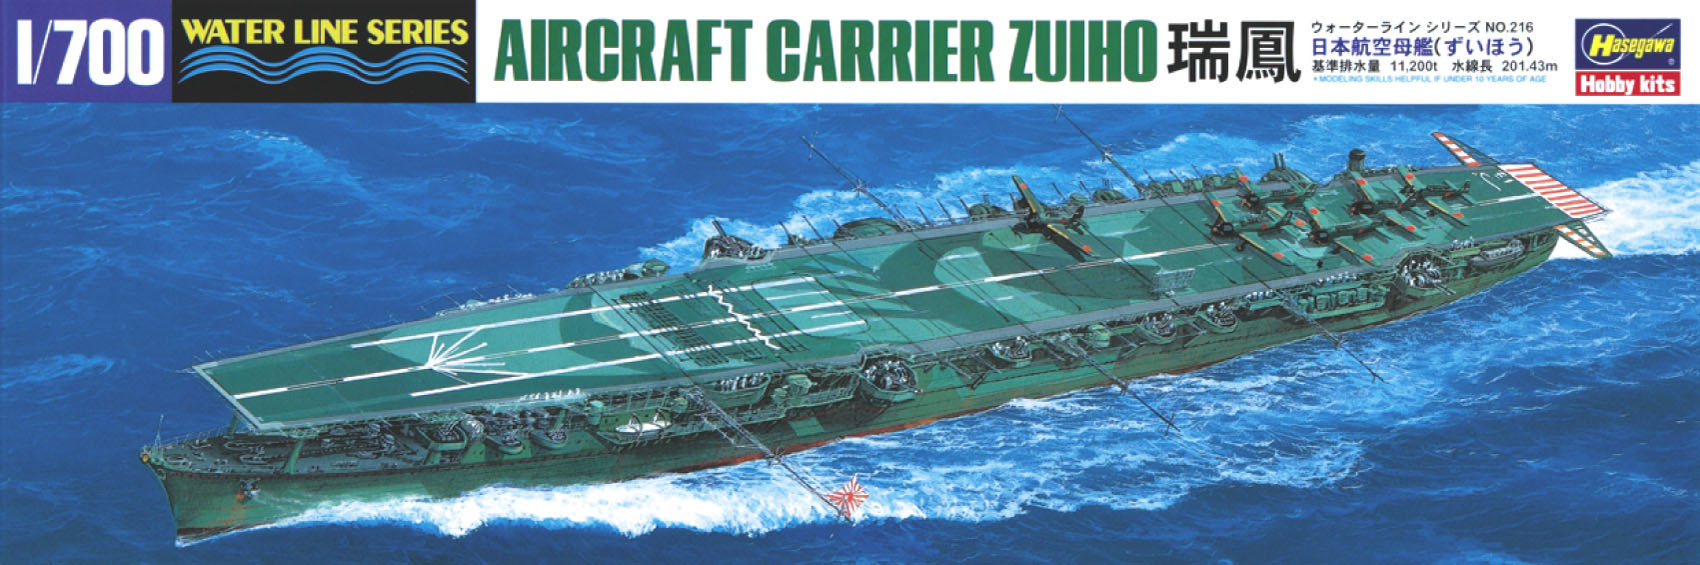 Hasegawa Aircraft Carrier Zuiho